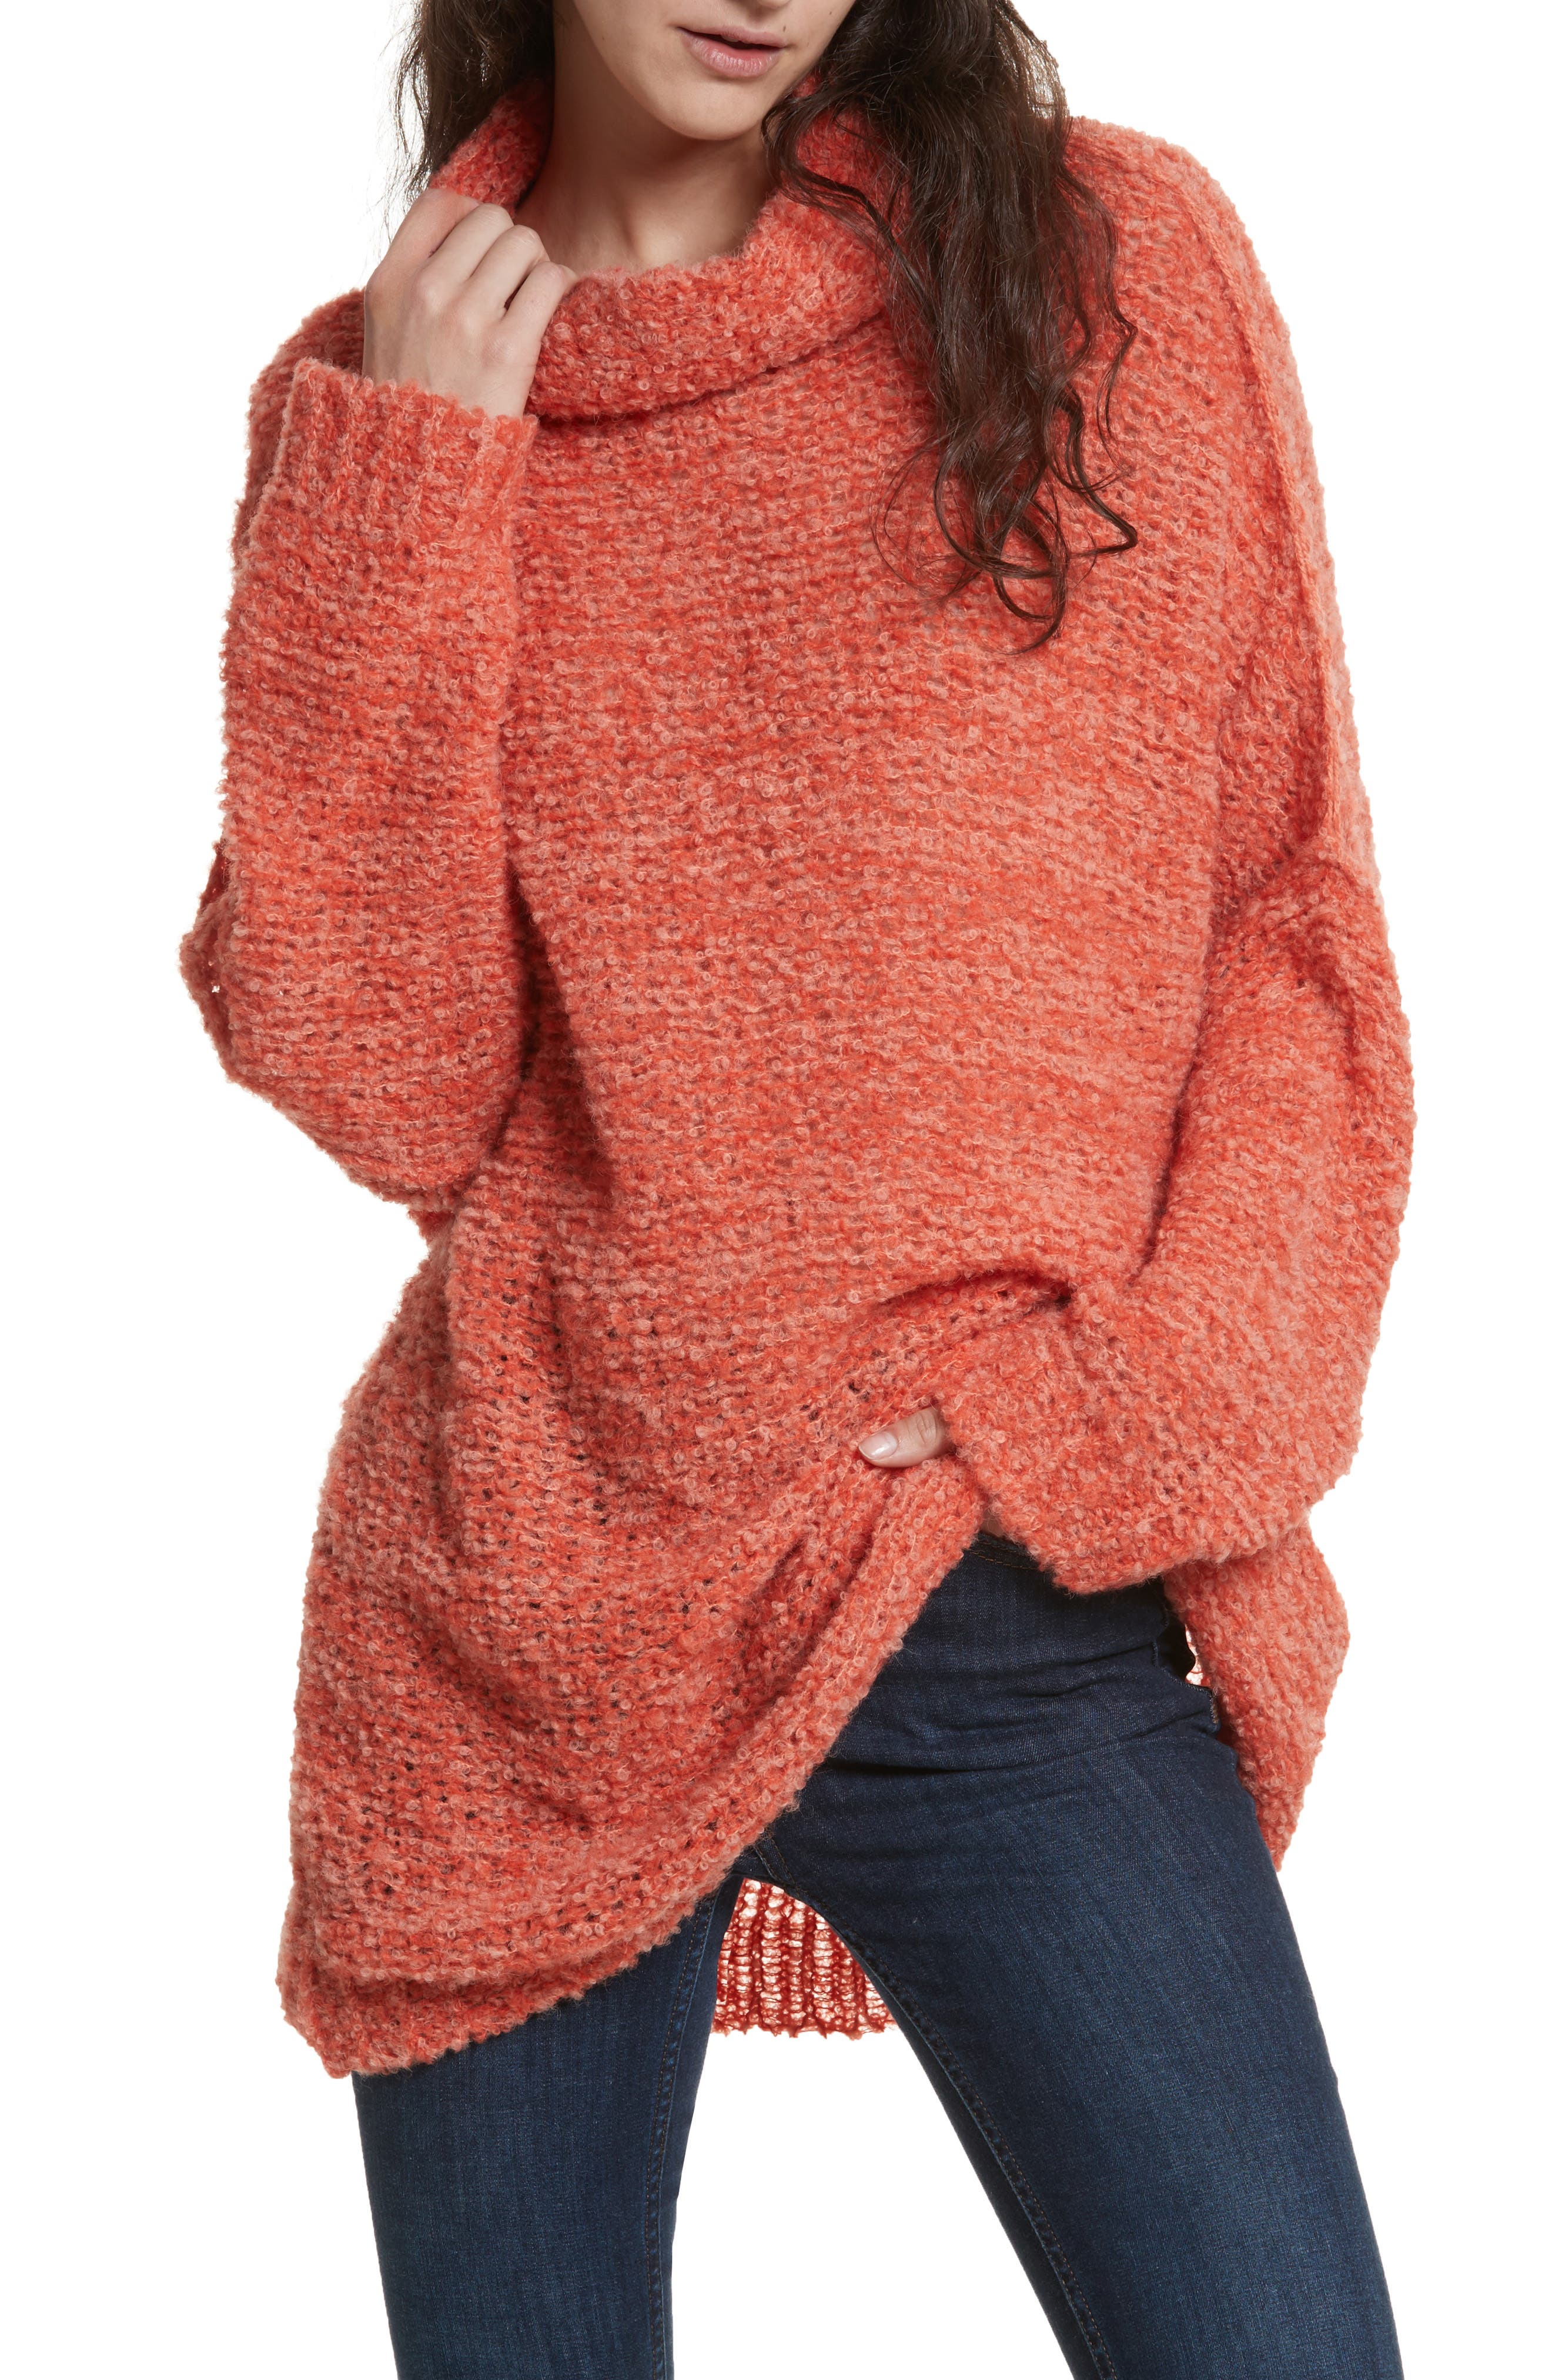 'She's All That' Knit Turtleneck Sweater,                             Main thumbnail 1, color,